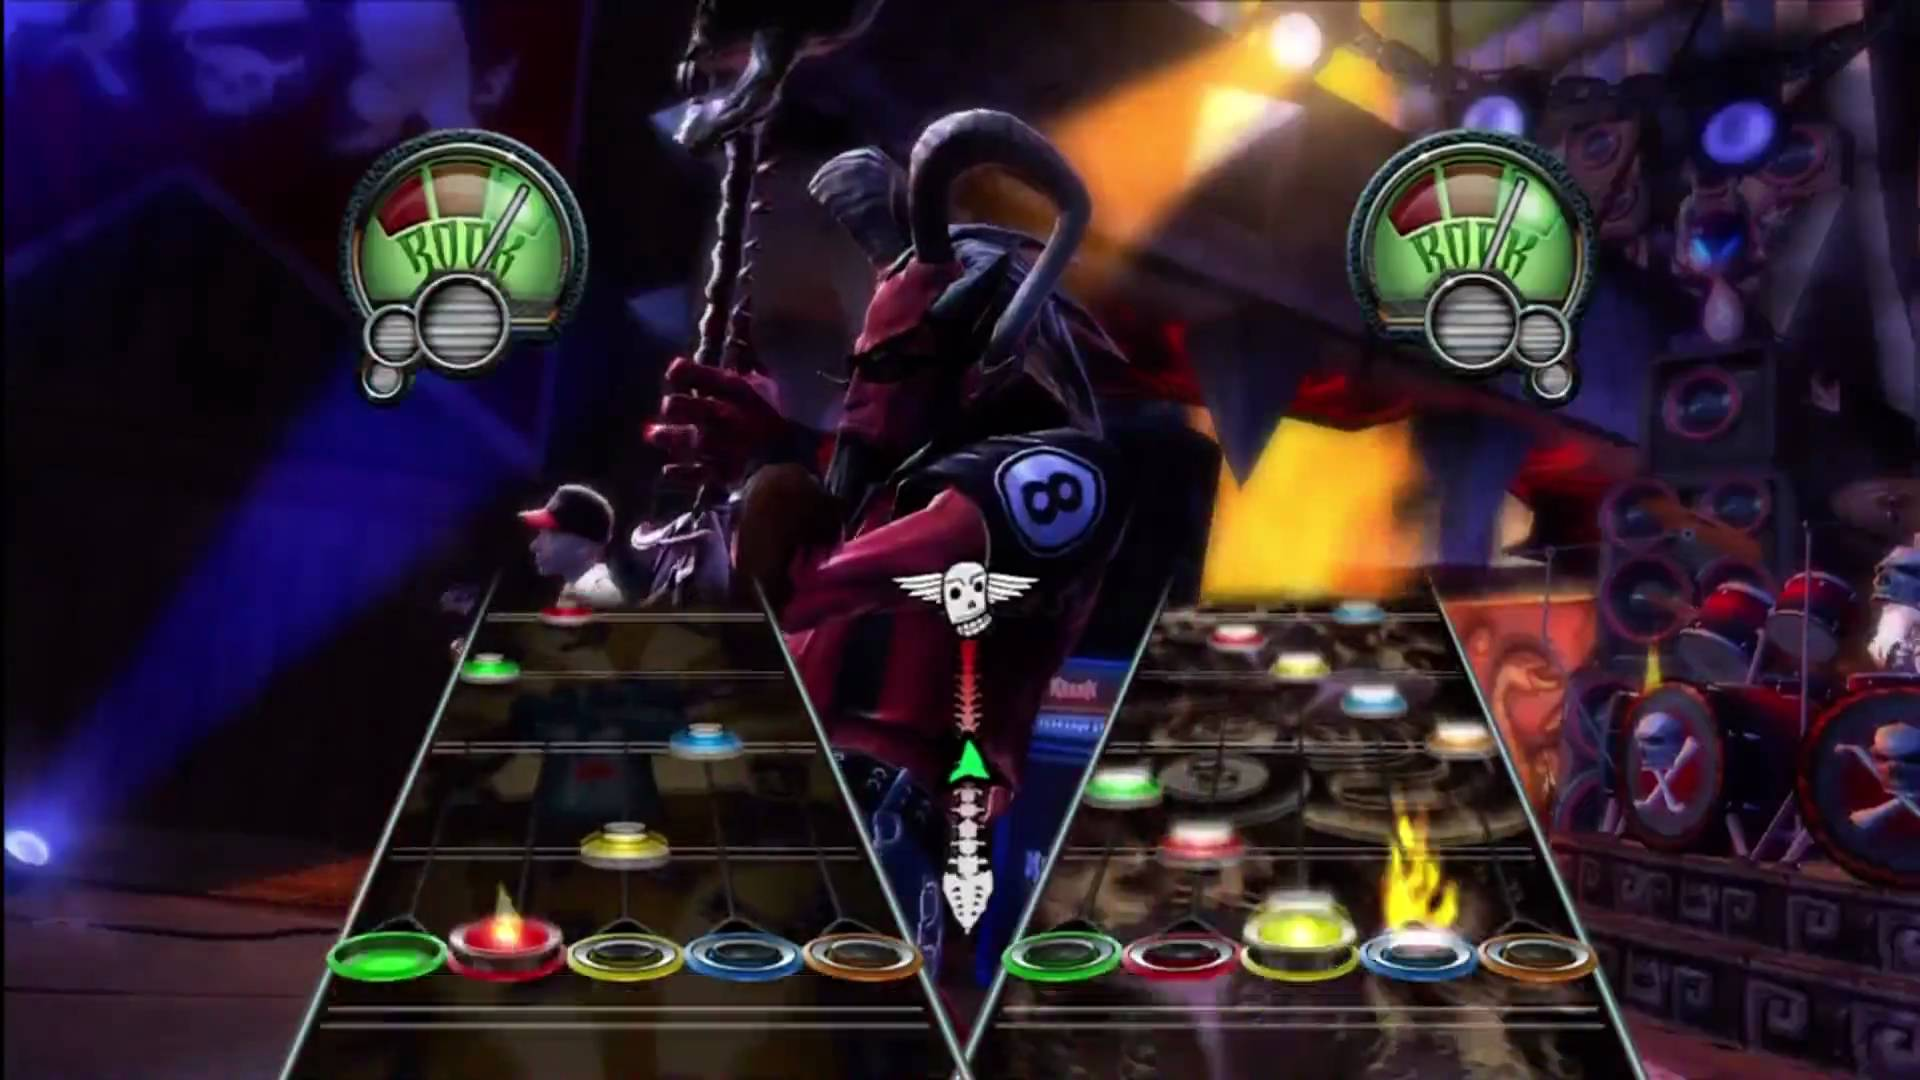 Guitar Hero 3 Backgrounds, Compatible - PC, Mobile, Gadgets| 1920x1080 px